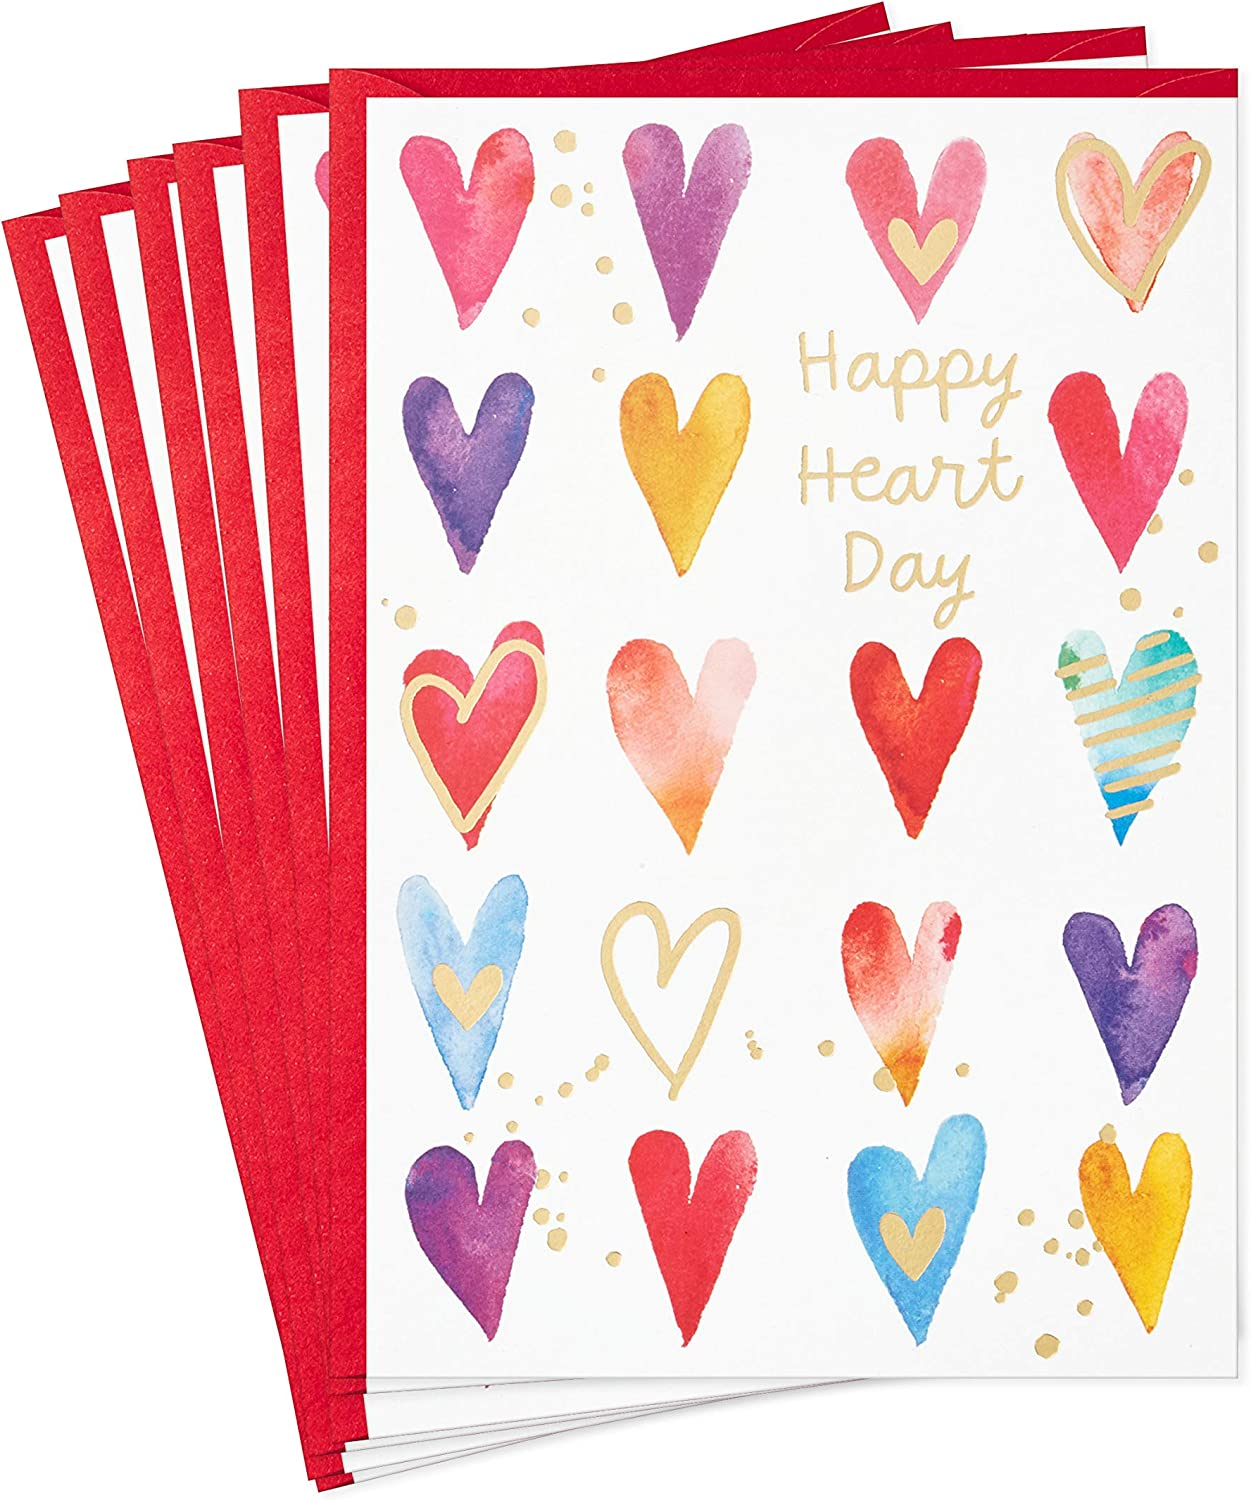 Hallmark Special sale item Pack of Valentines Day Cards Happy Dealing full price reduction 6 Valent Heart